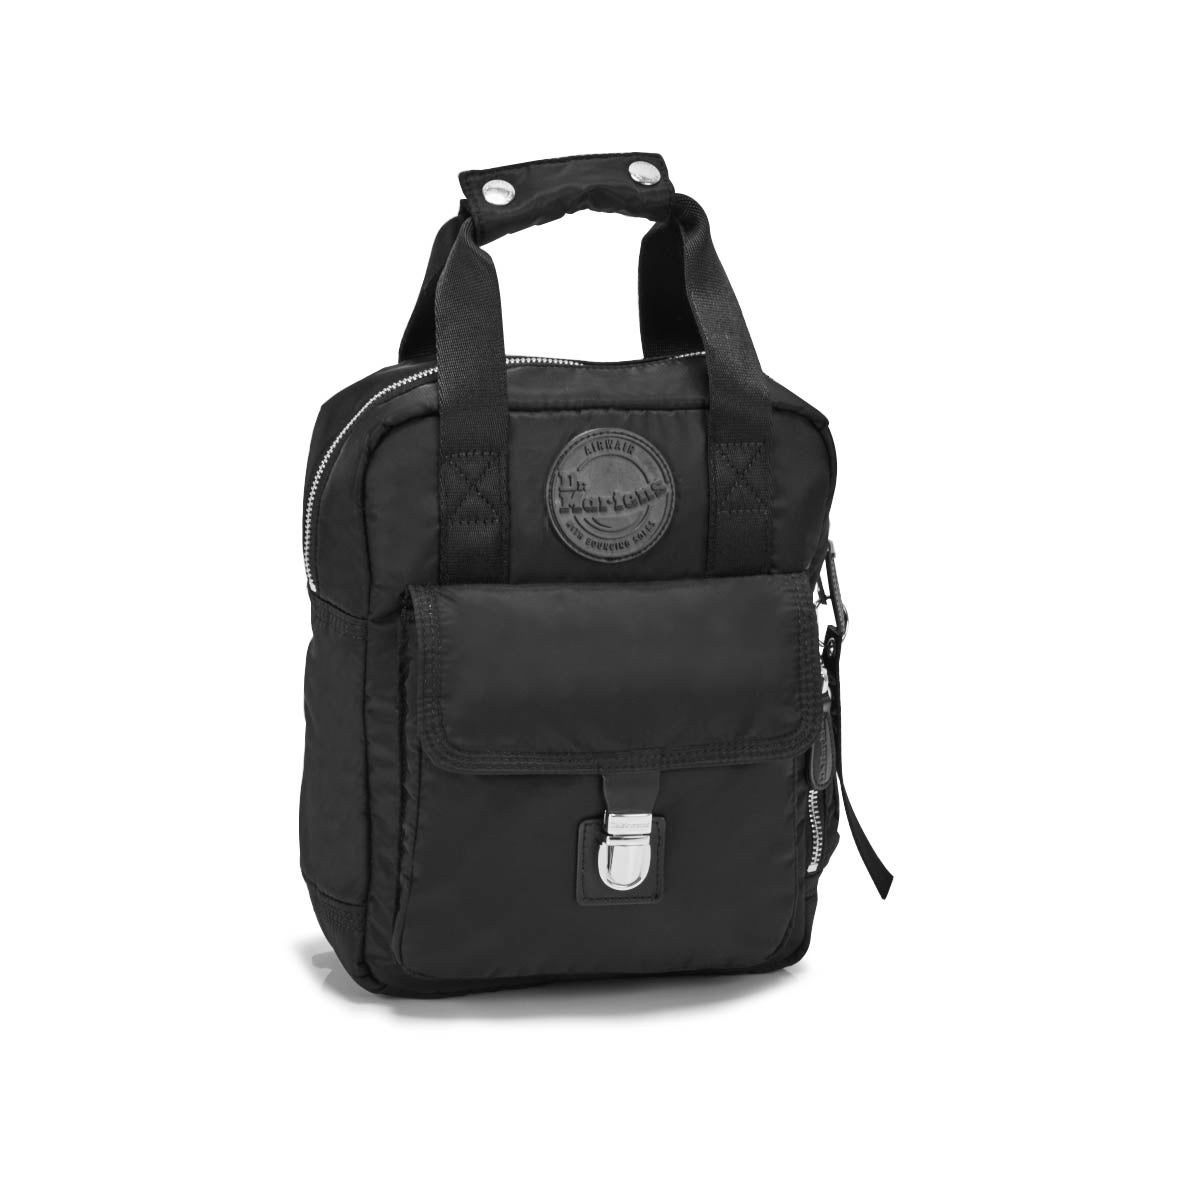 Dr Martens Small blk nylon backpack